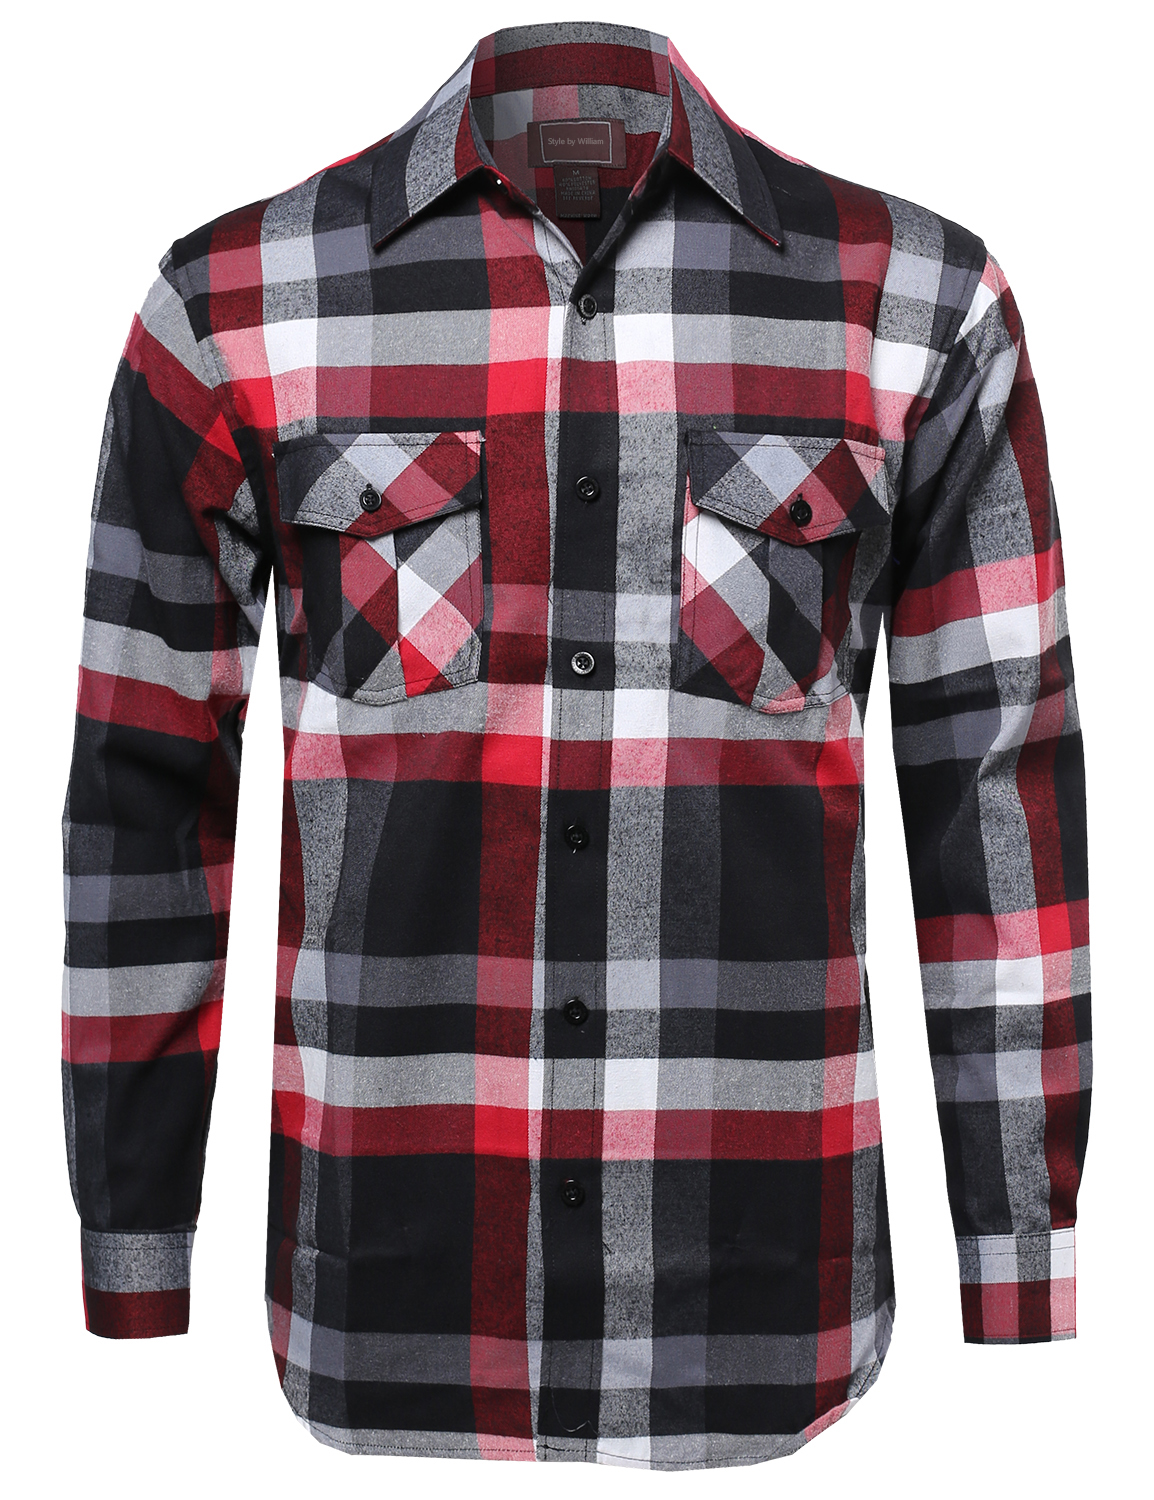 Fashionoutfit men 39 s casual flannel button down plaid for Flannel checked long sleeve shirt